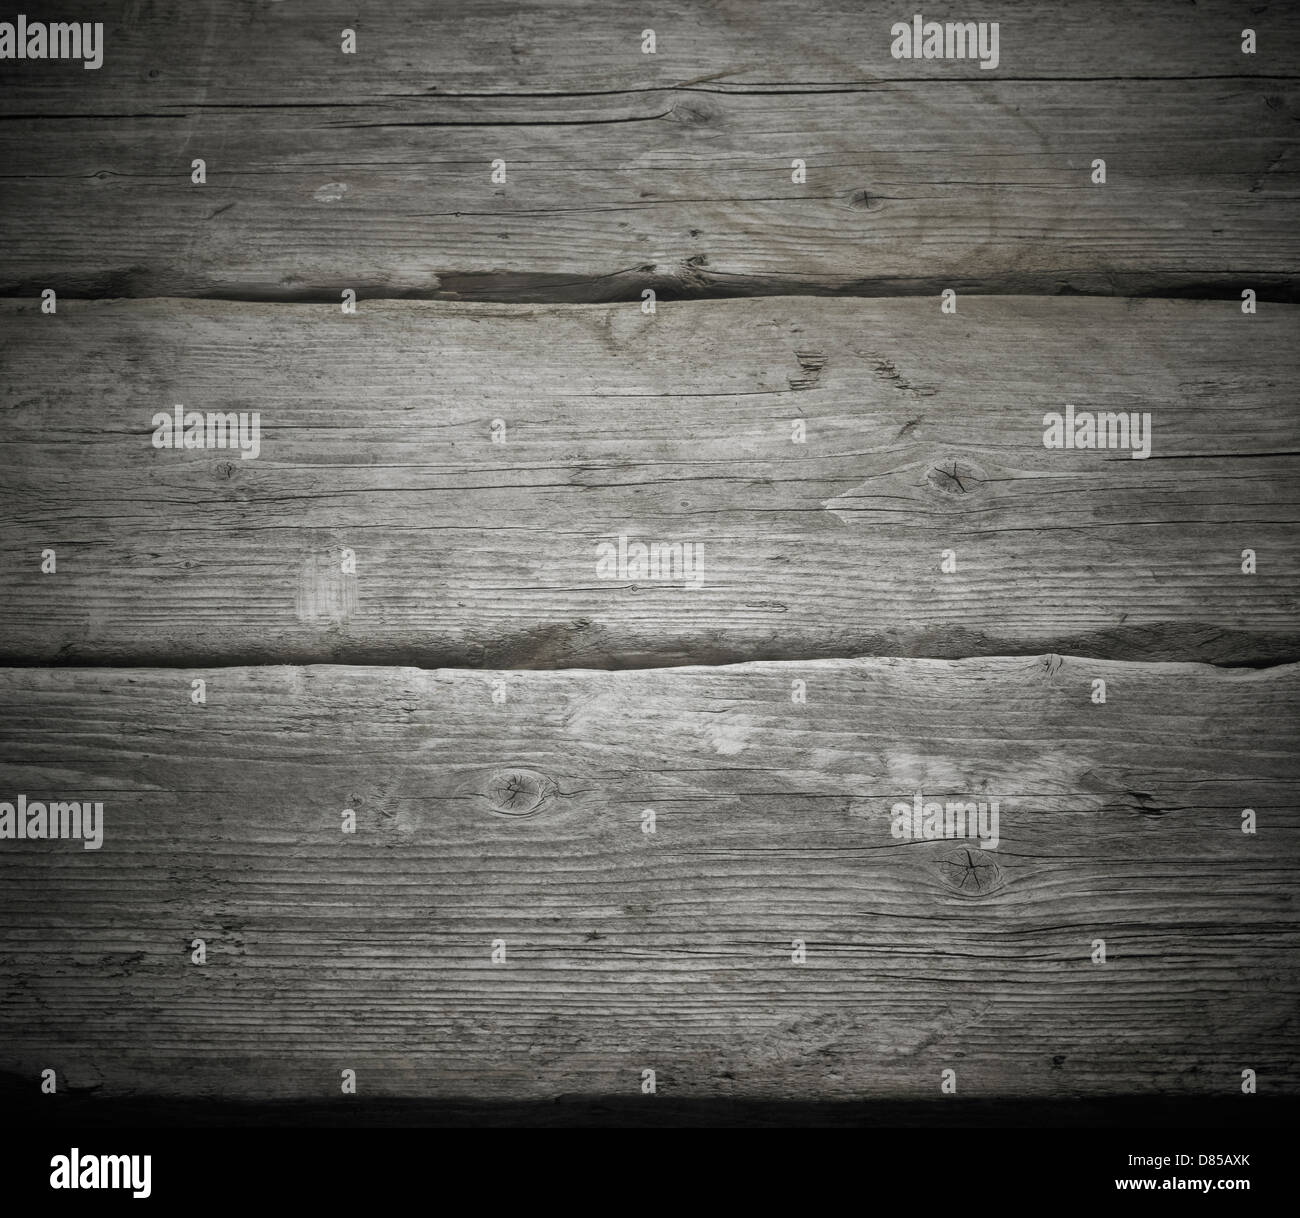 Wood grain plank backgrounds. Old , gray, worn, weathered, grained,BBQ, - Stock Image